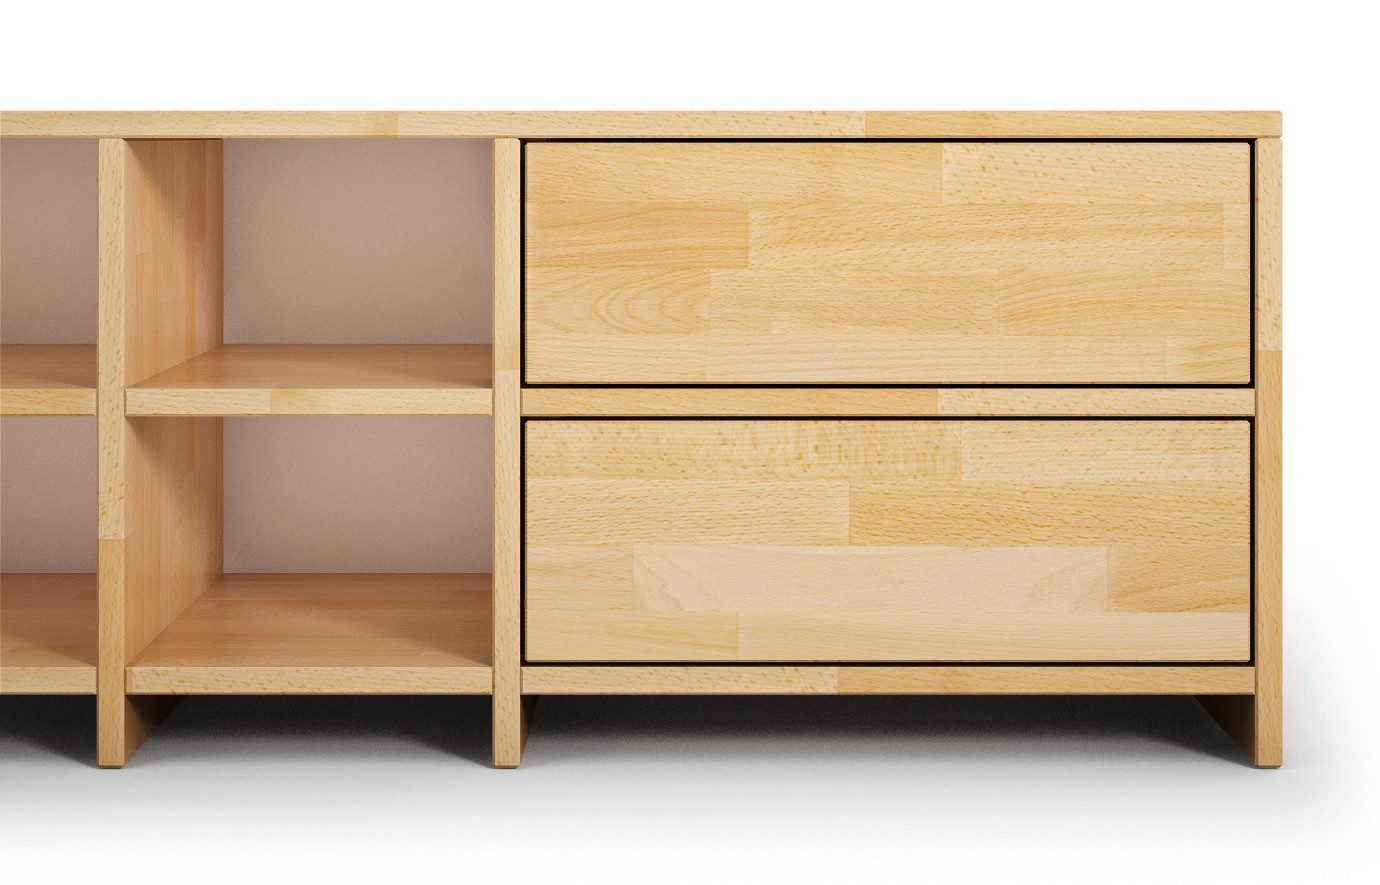 krems in buche hifi sideboard nach ma. Black Bedroom Furniture Sets. Home Design Ideas